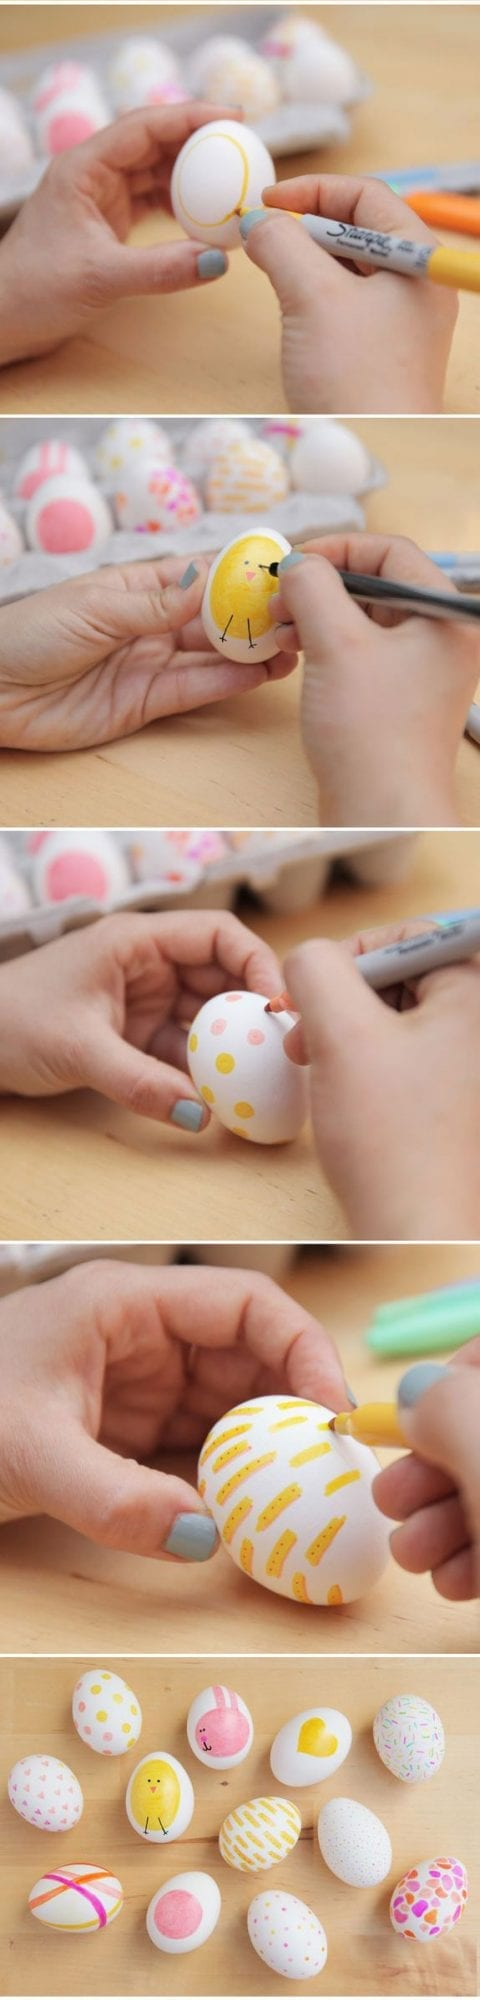 DIY Sharpie Crafts - Easter Egg Decorating